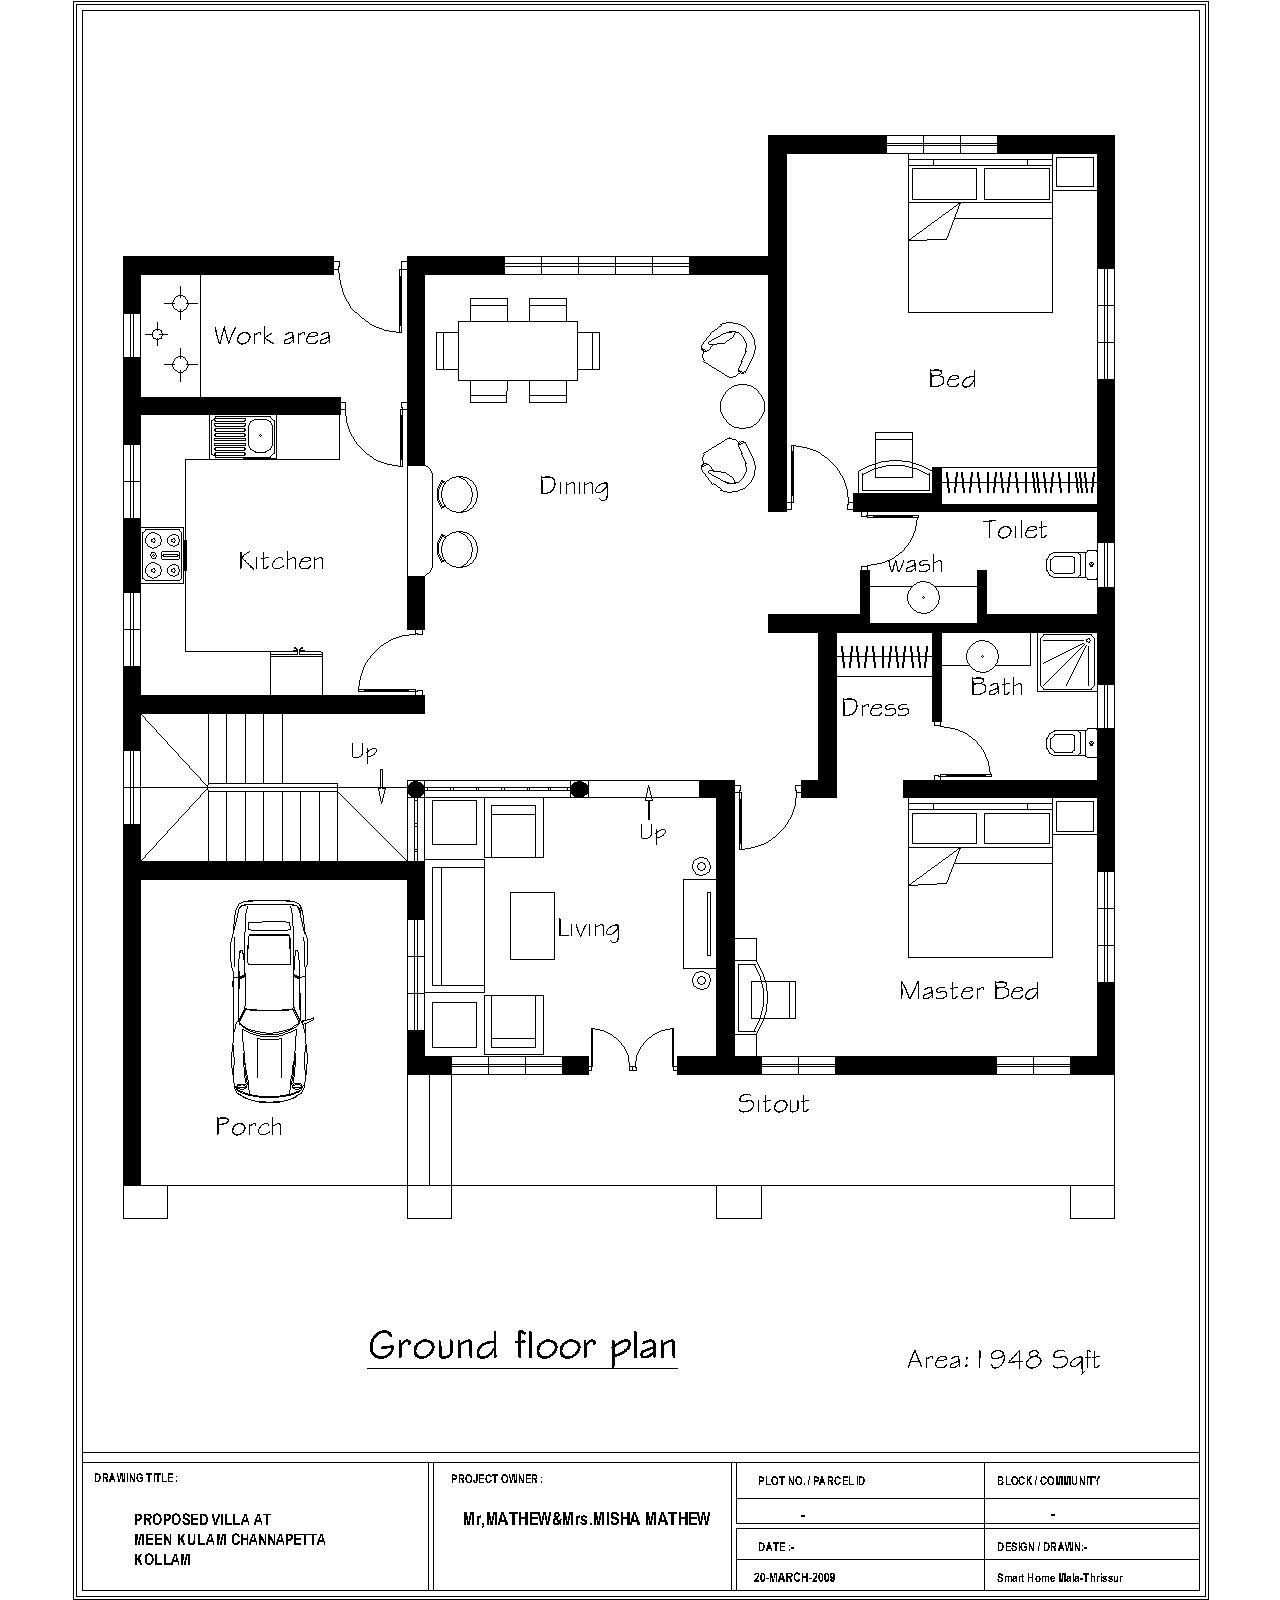 Bedroom floor plans bedroom furniture high resolution 4 bedroom house floor plan